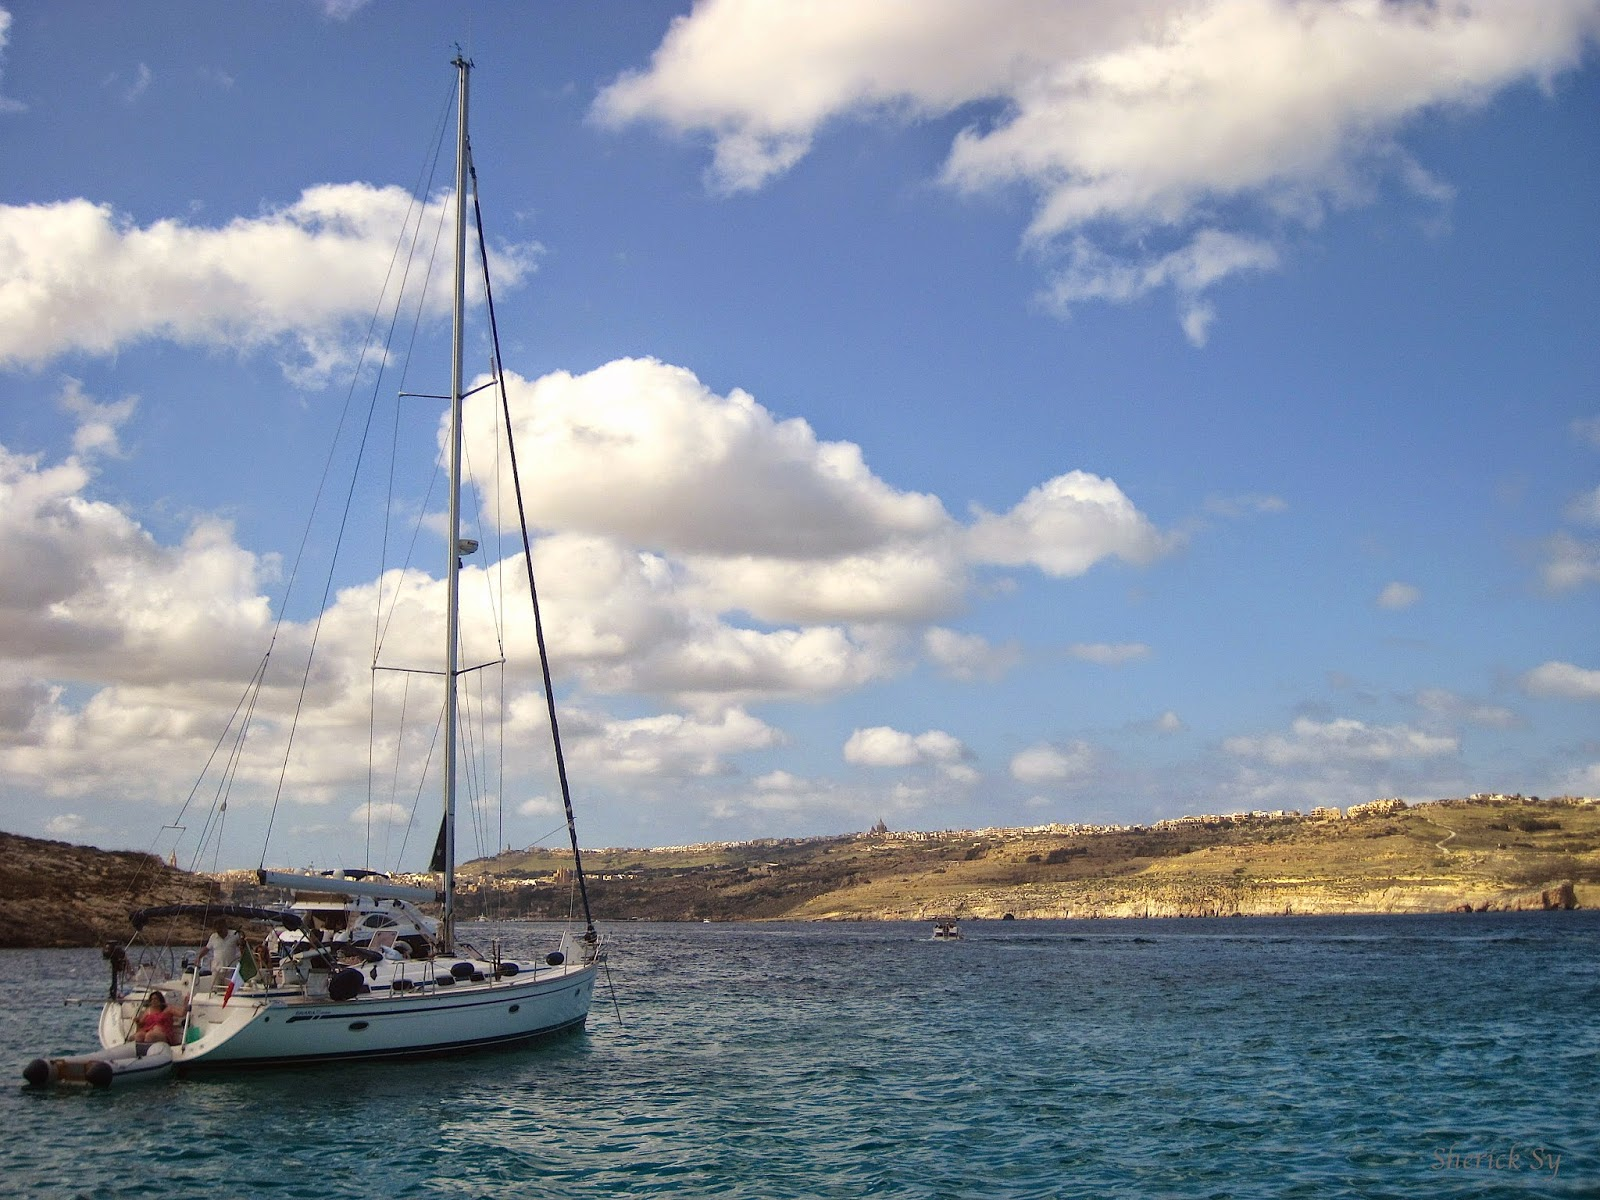 Sailing at the Blue Lagoon, Comino, Malta